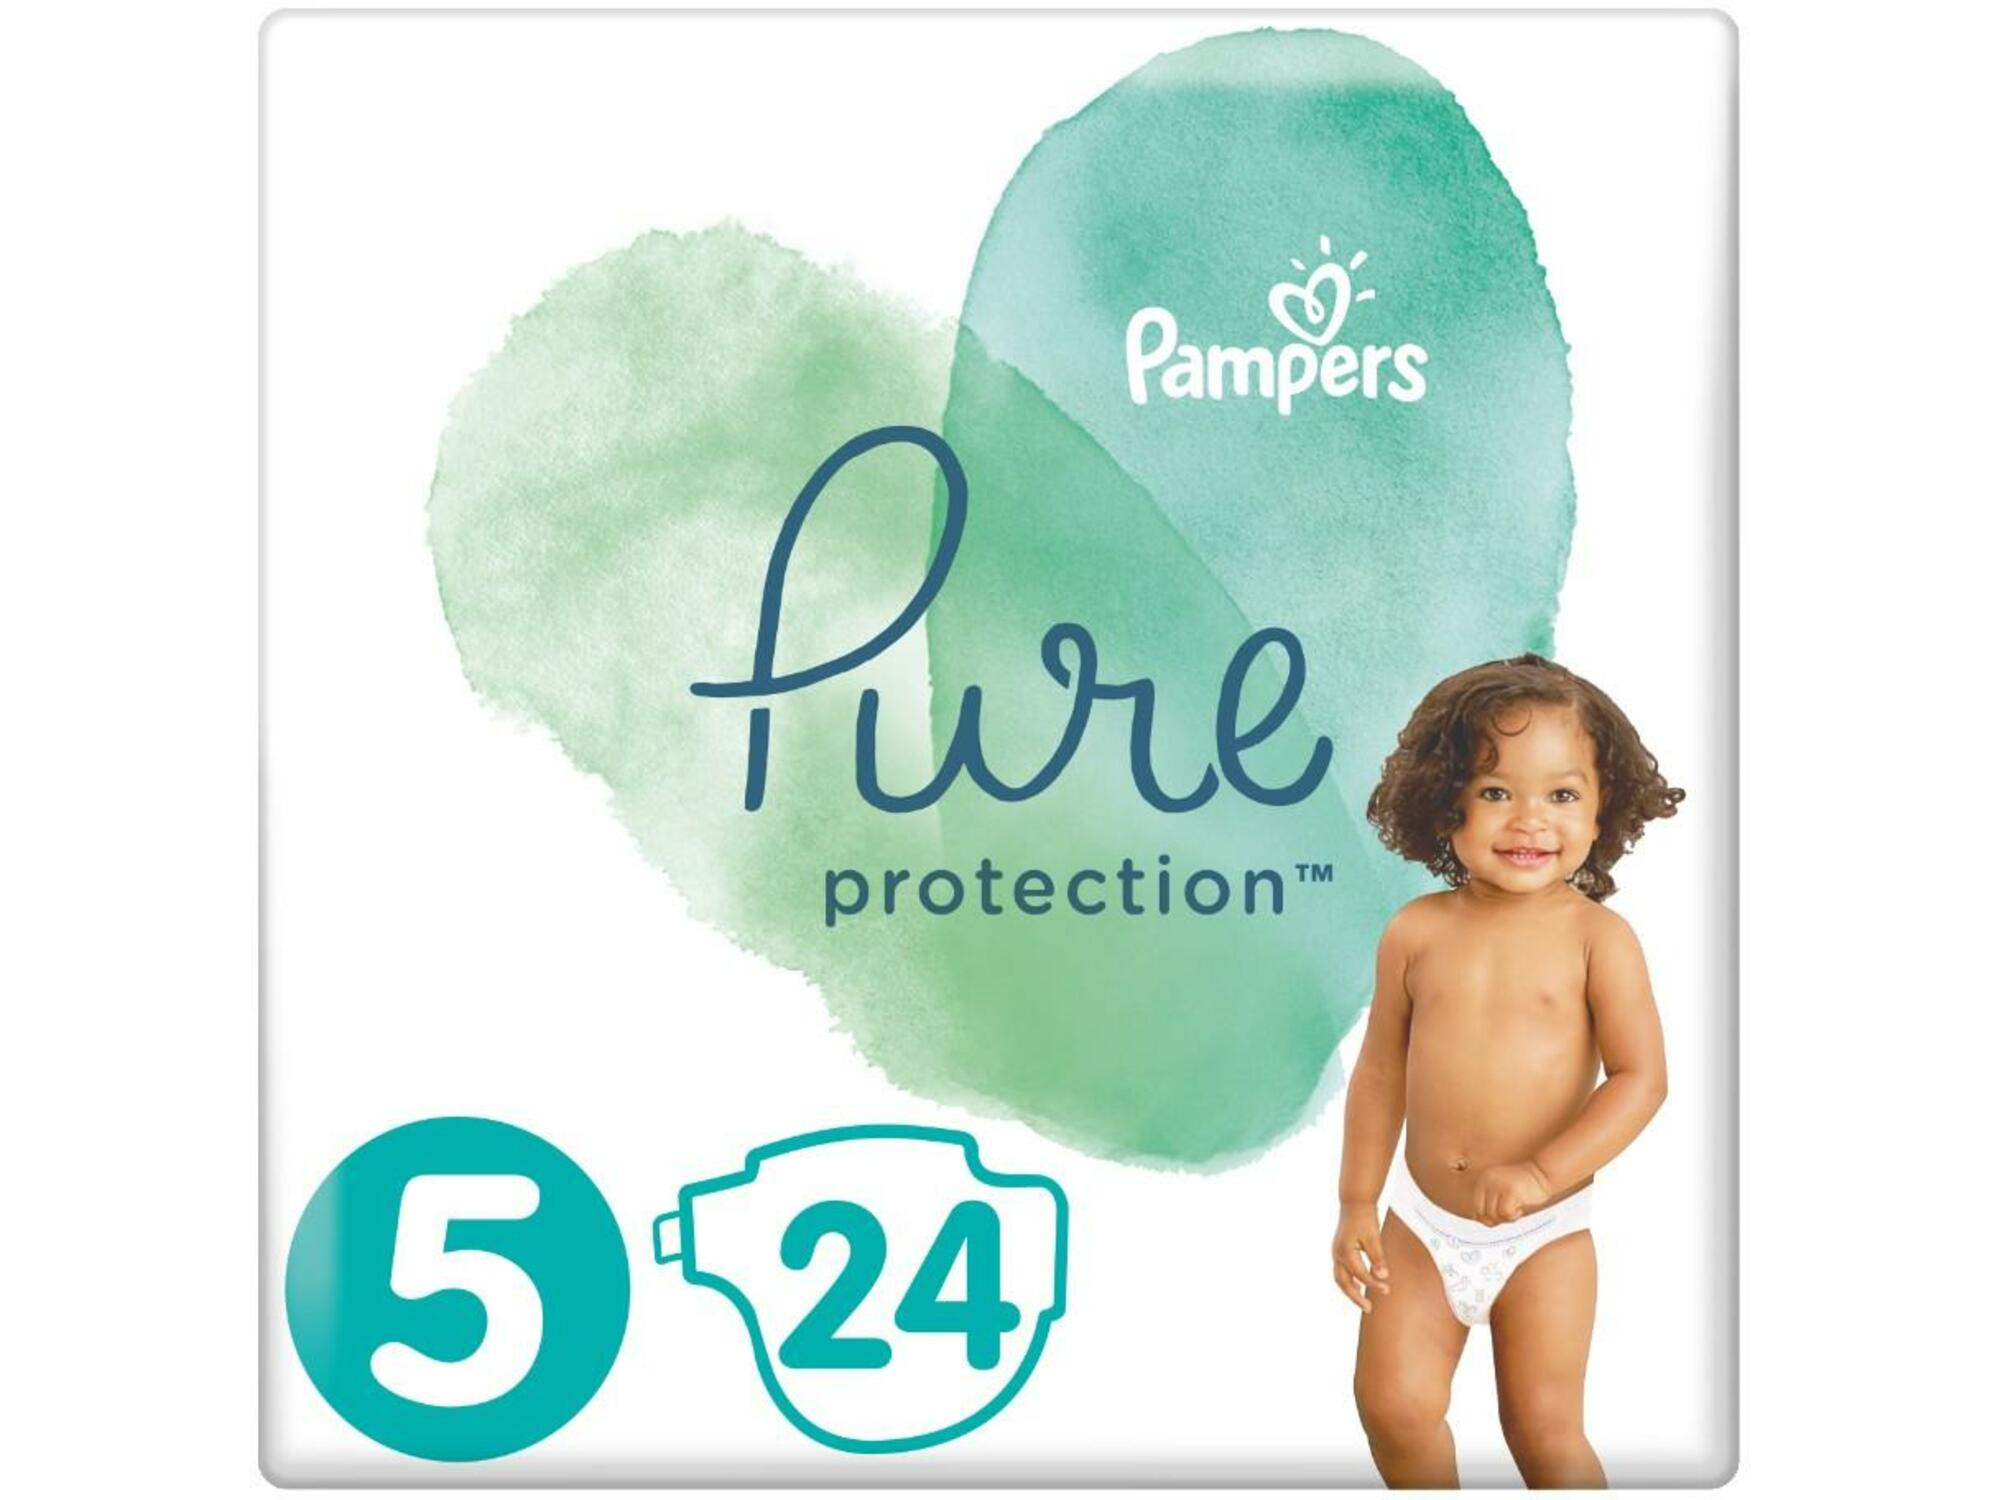 PAMPERS plenice Pure Protection, velikost 5, 11+ kg, 24 kos